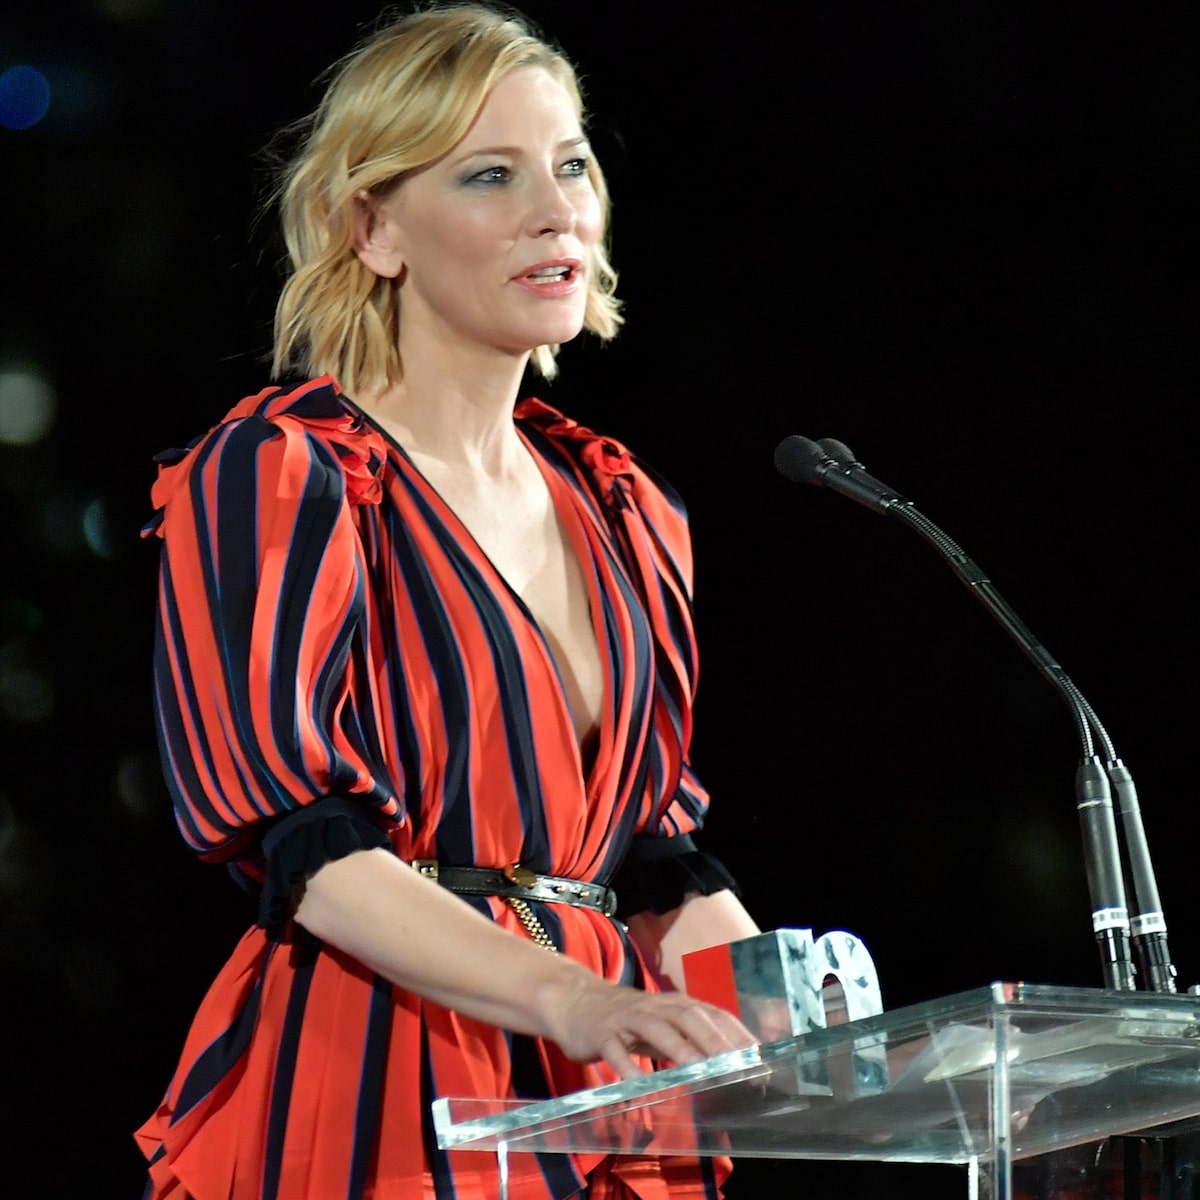 Cate Blanchett to Men: 'We All Like to Look Sexy, But It Doesn't Mean We Want to Fuck You' #CateBlanchett 😏💕 https://t.co/dU3b64gztM